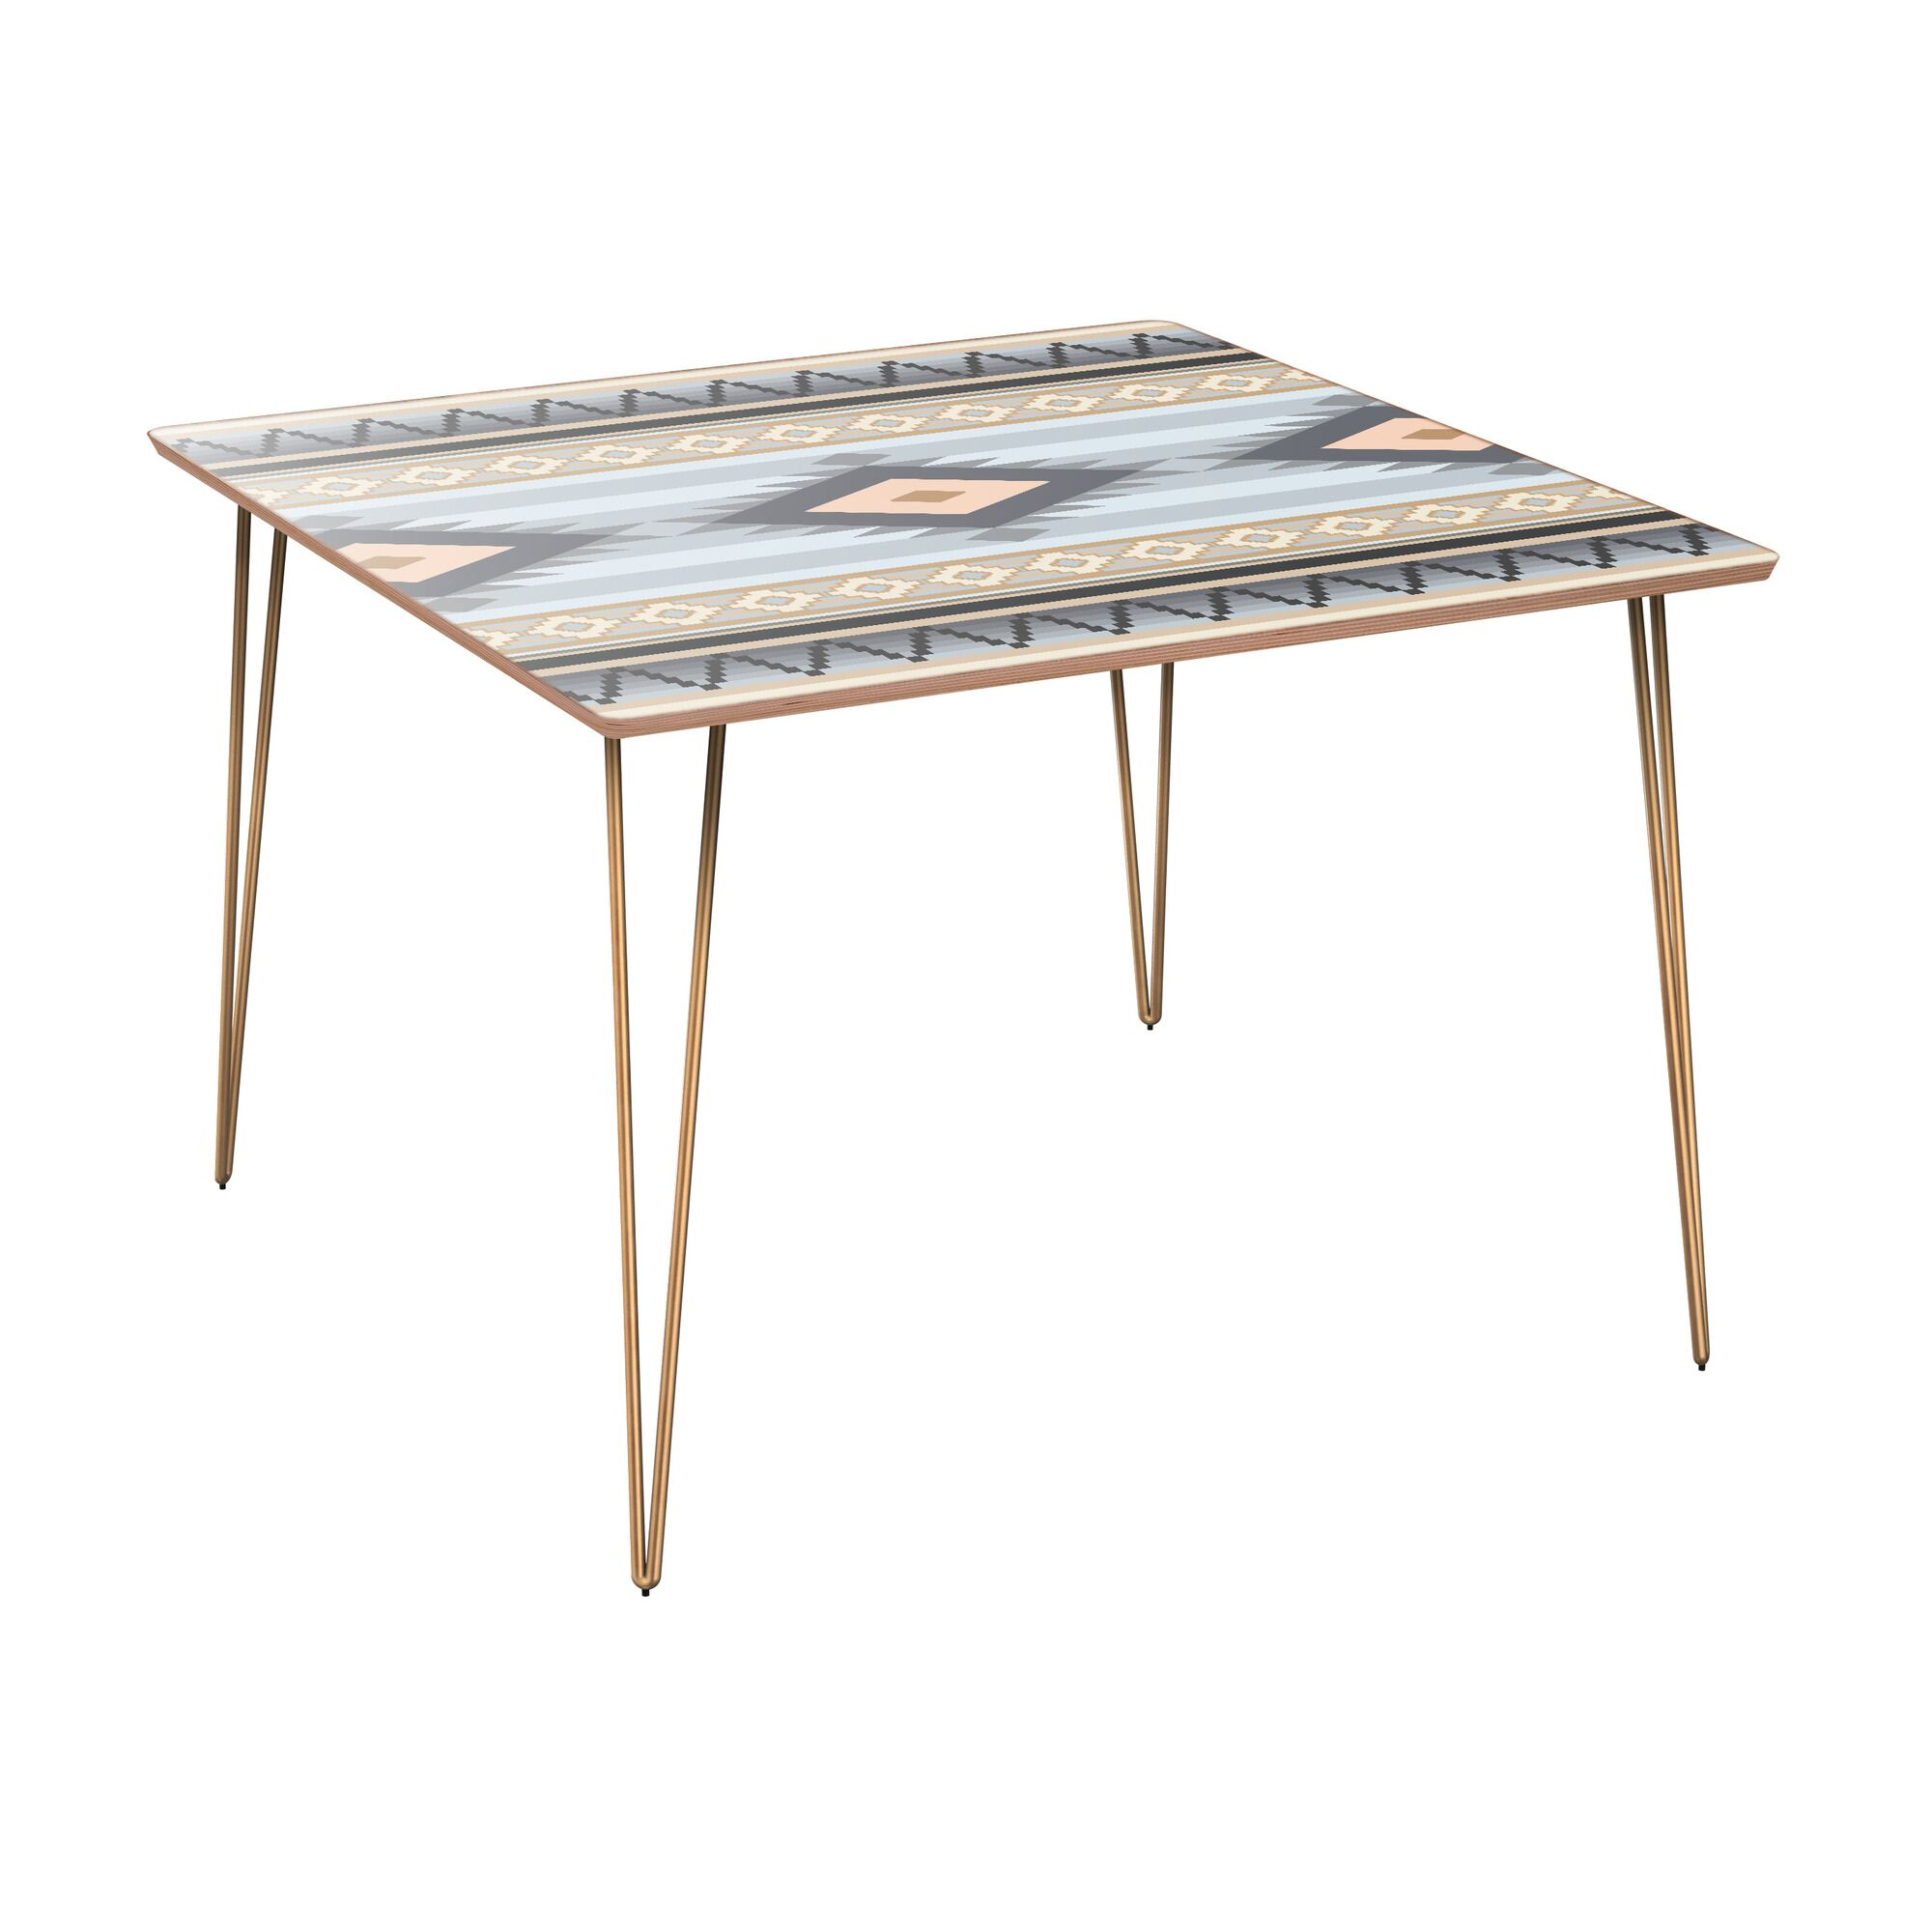 Camargo Dining Table Table Base Color: Brass, Table Top Color: Walnut